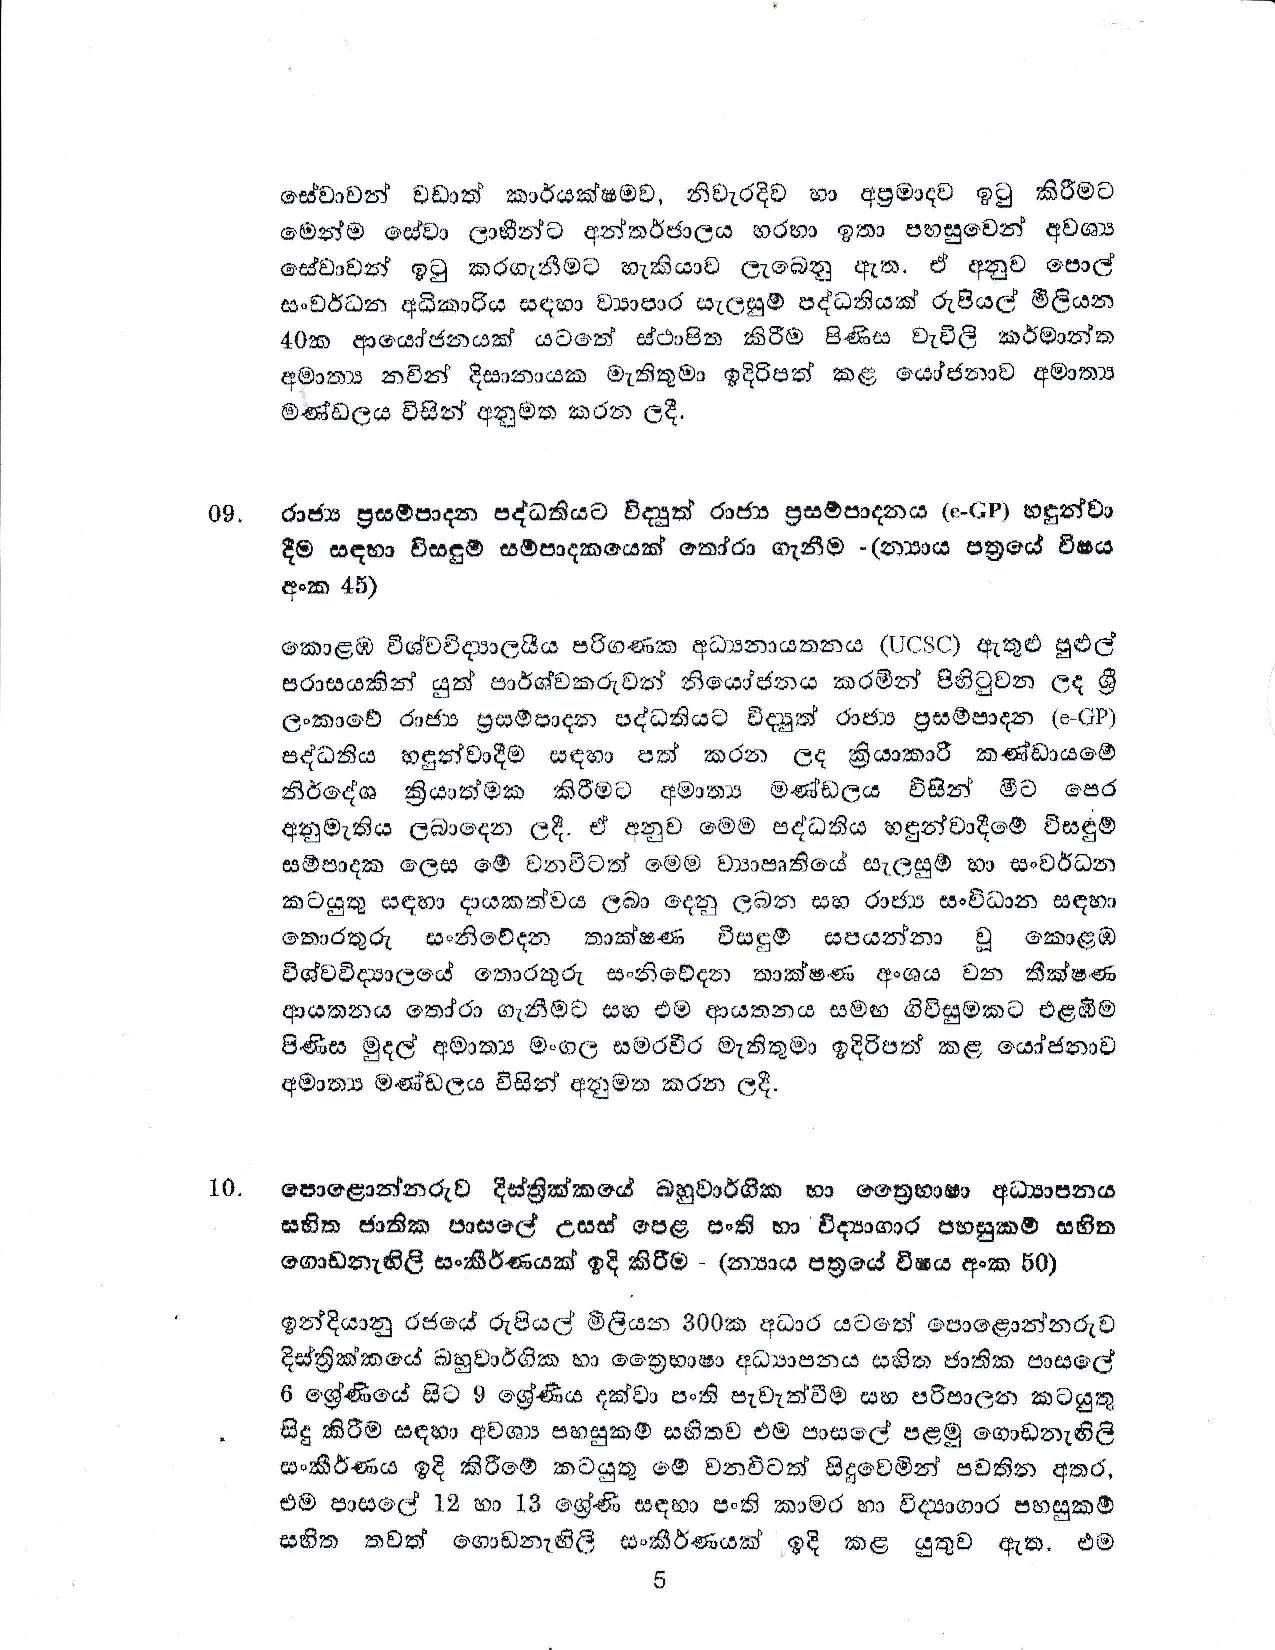 Cabinet Decision on 18.06.2019S page 005